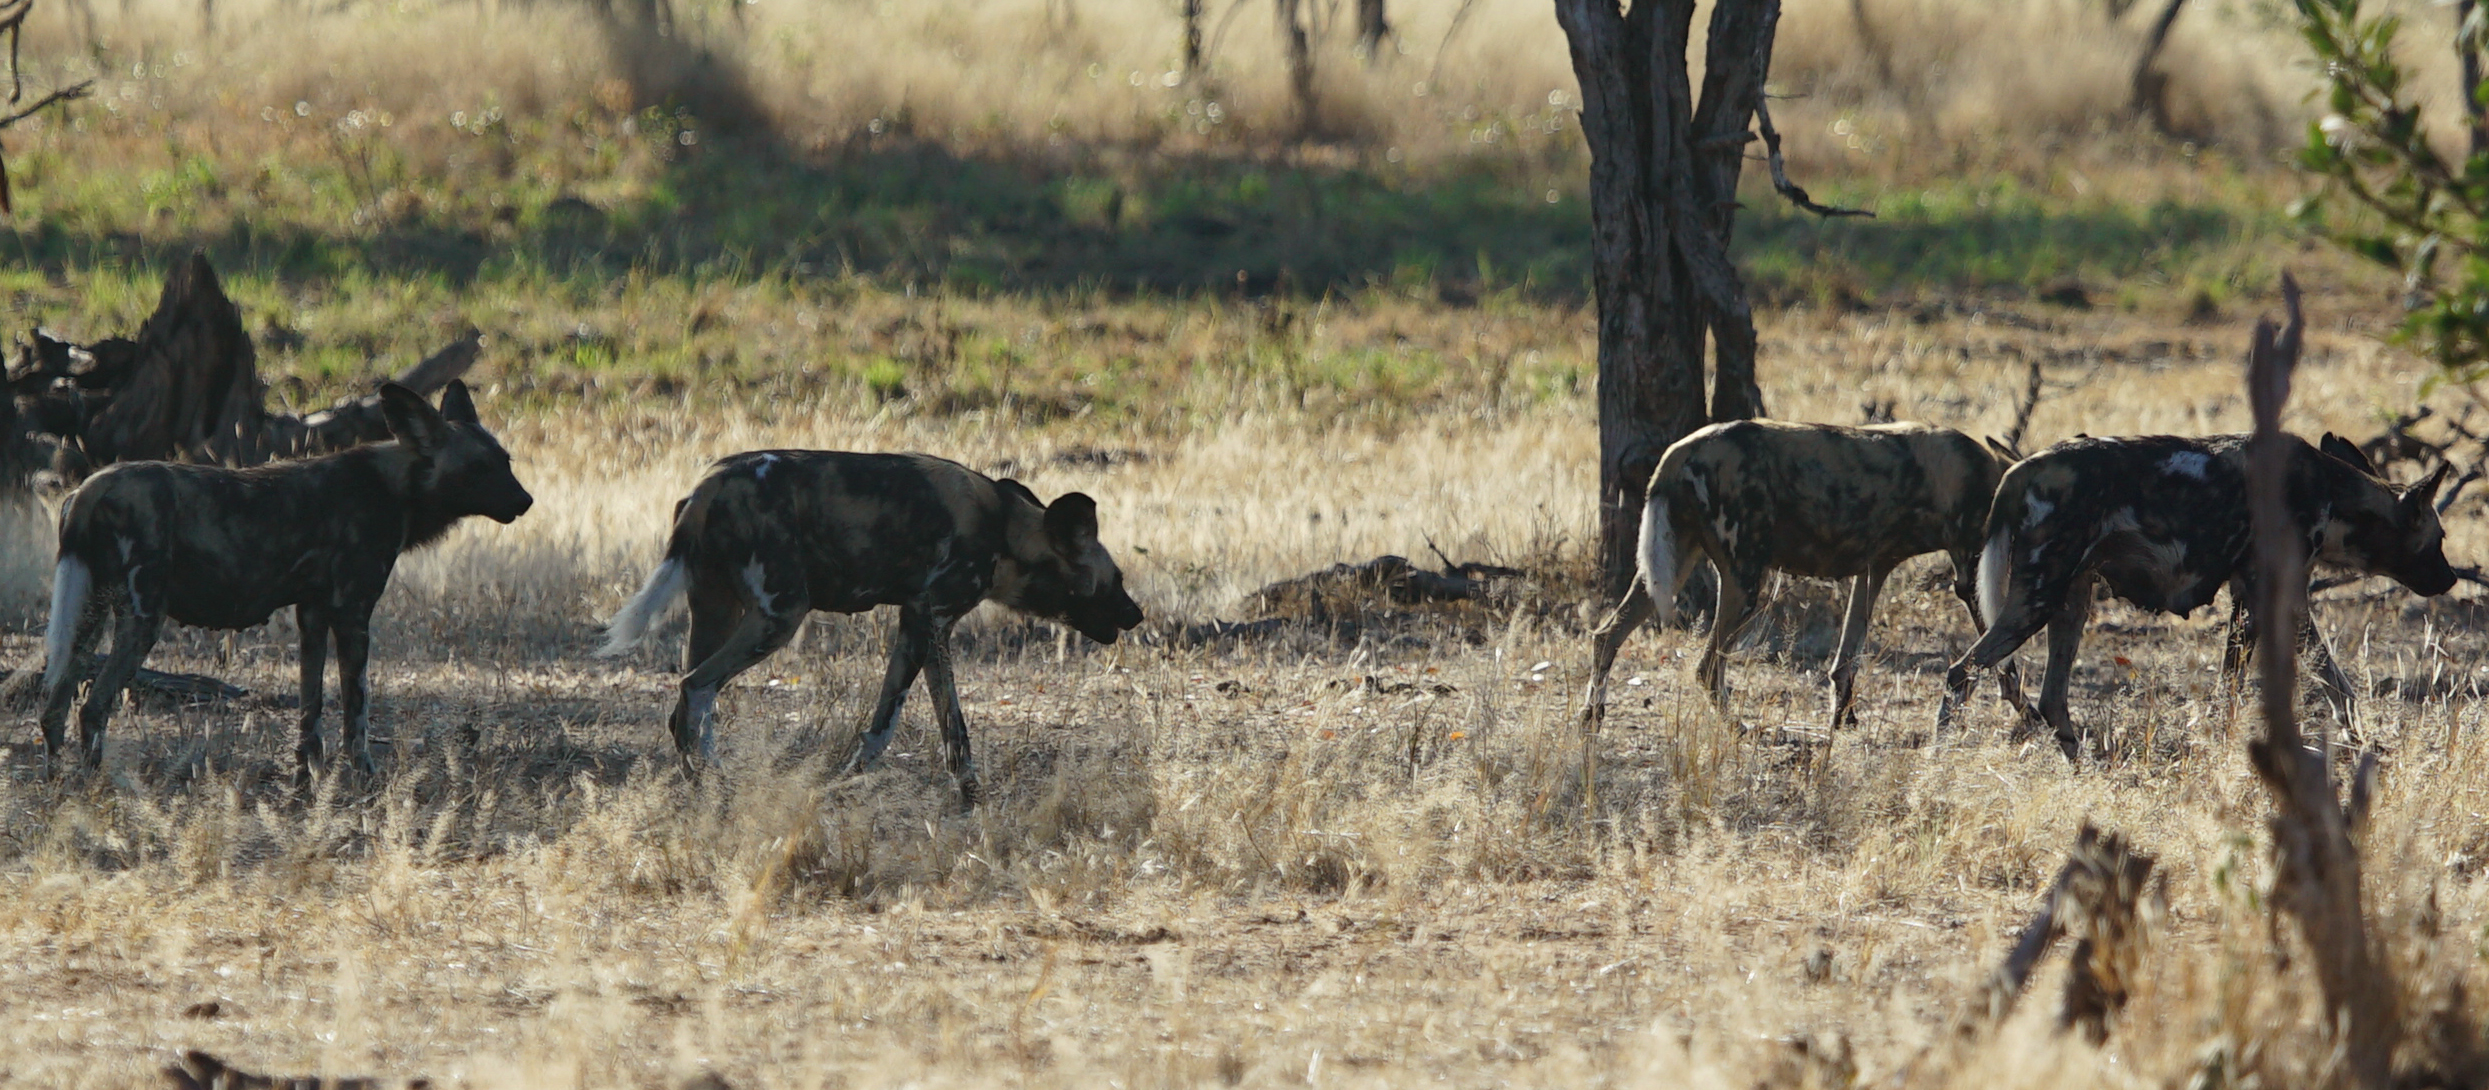 Sneezing Wild Dogs and Colorful Ocelot Prey